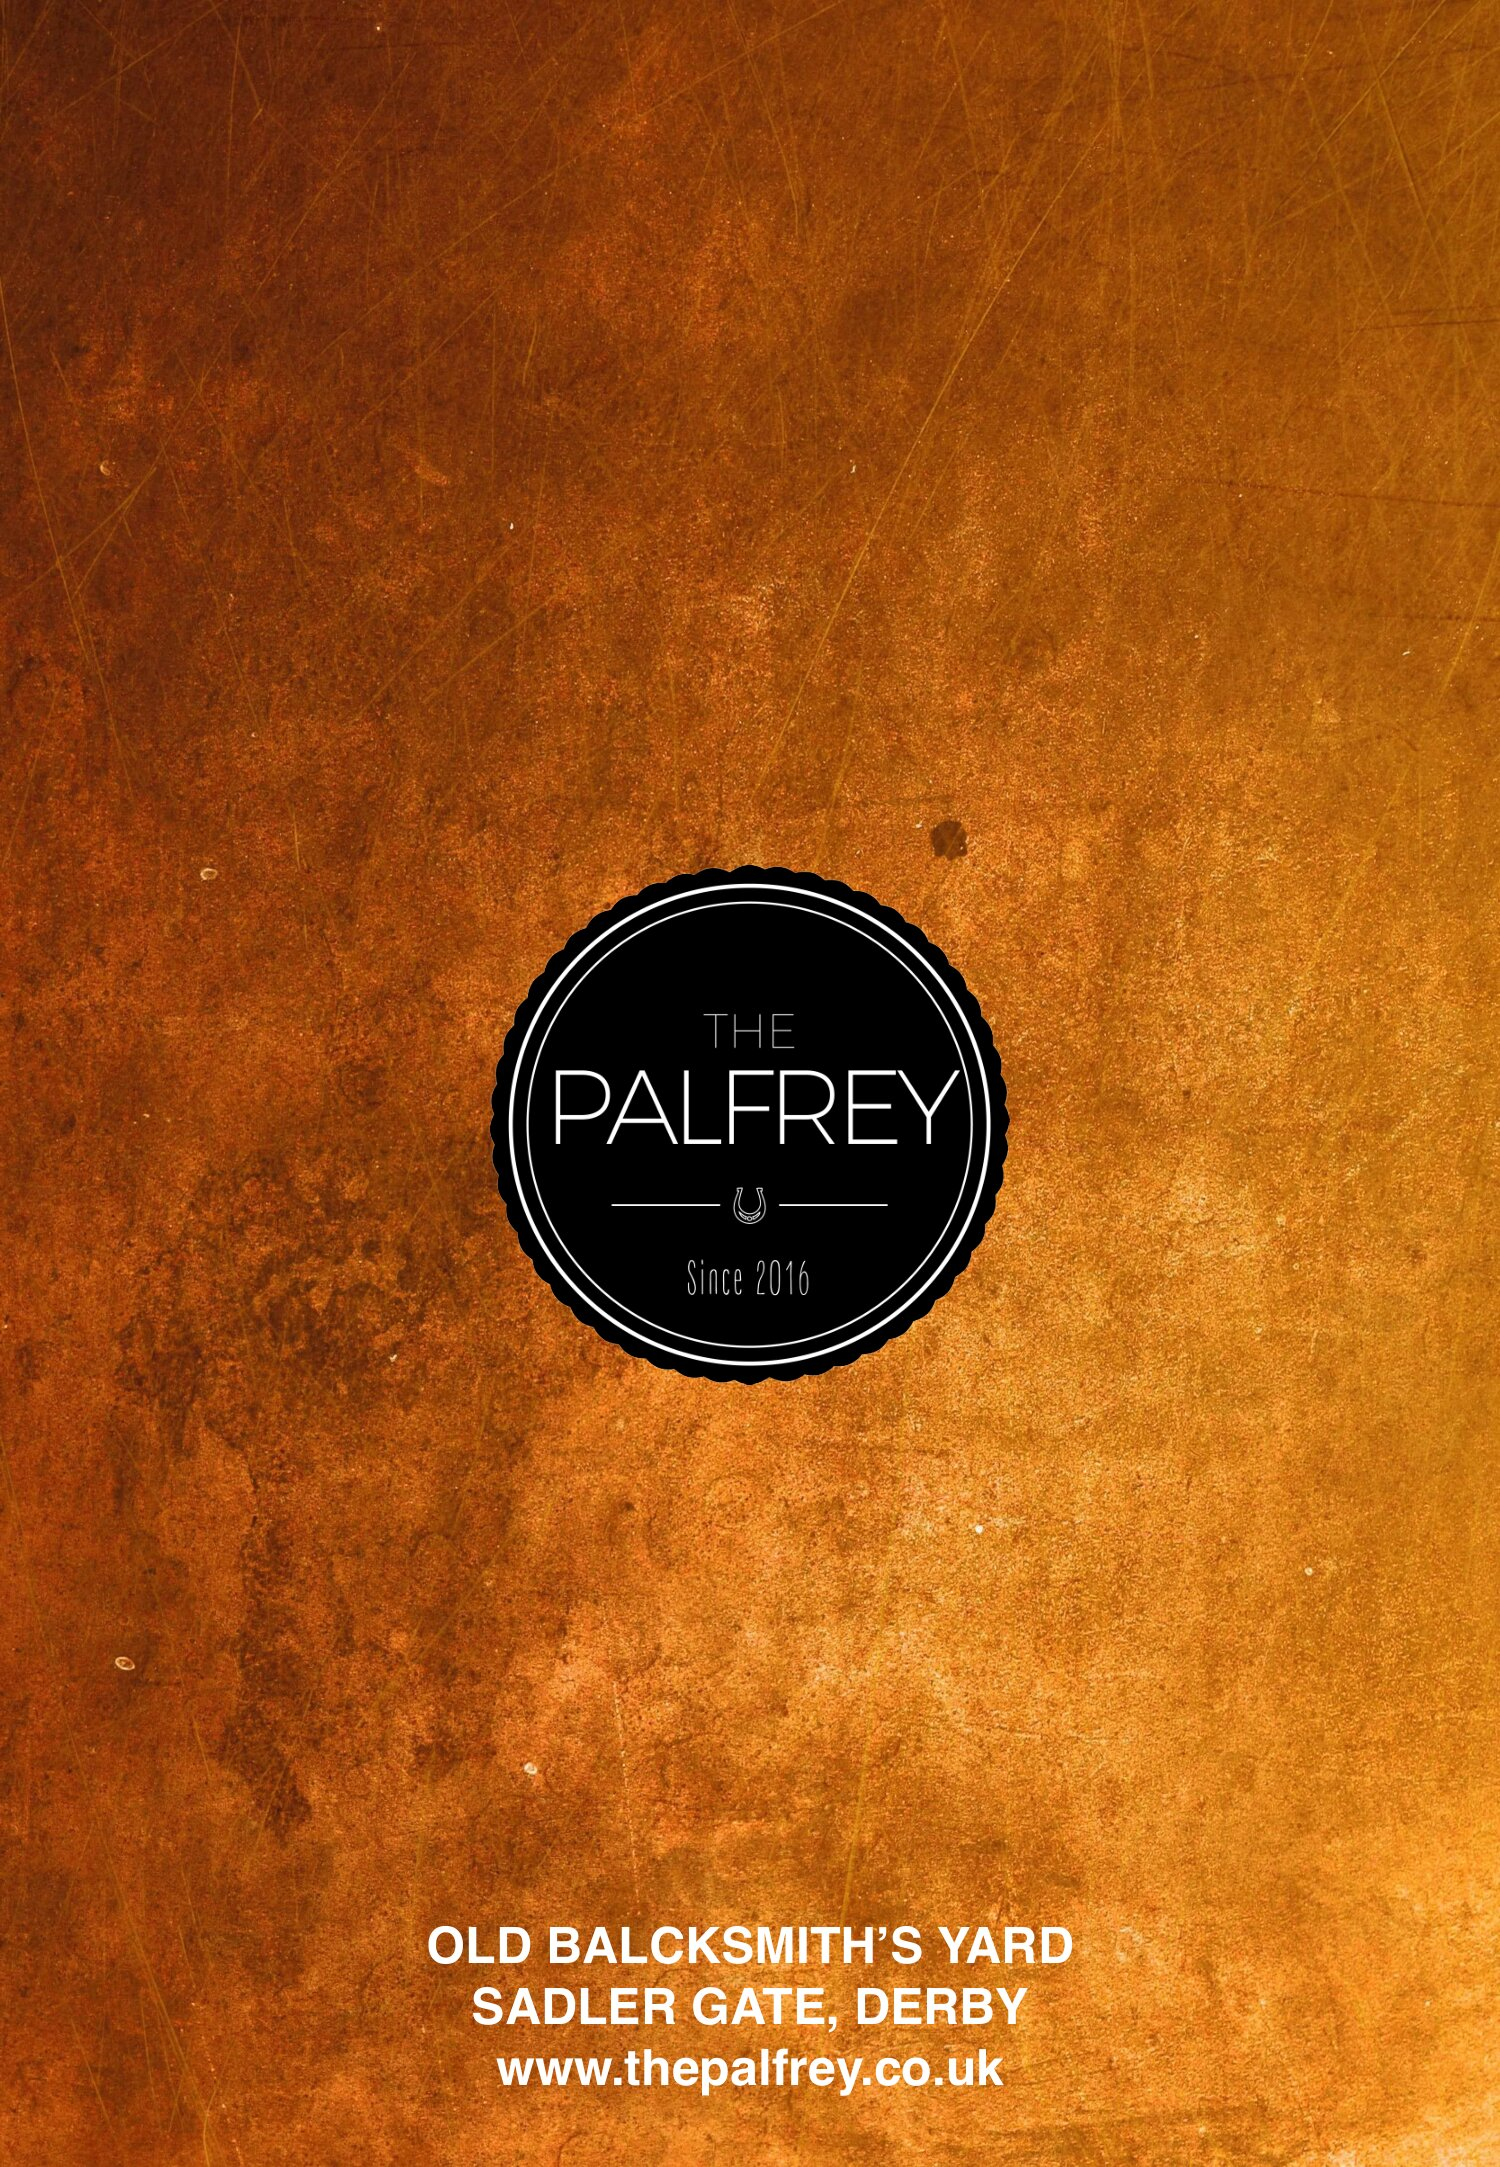 Palfrey Christmas Casual Dining Menu_2-end